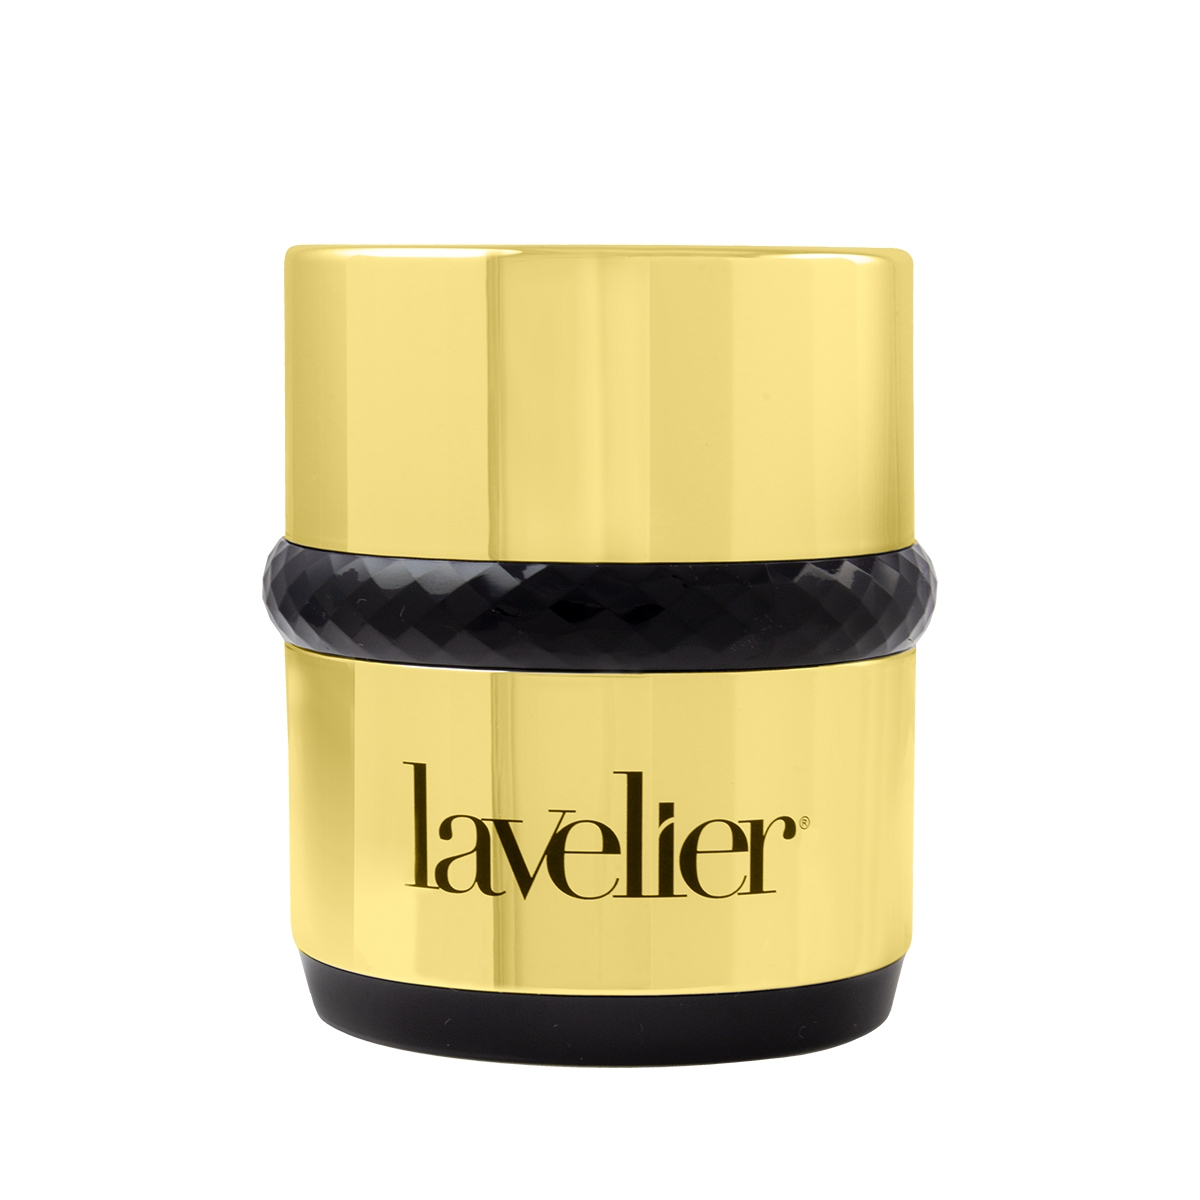 Lavelier Mineral Allure Cream product